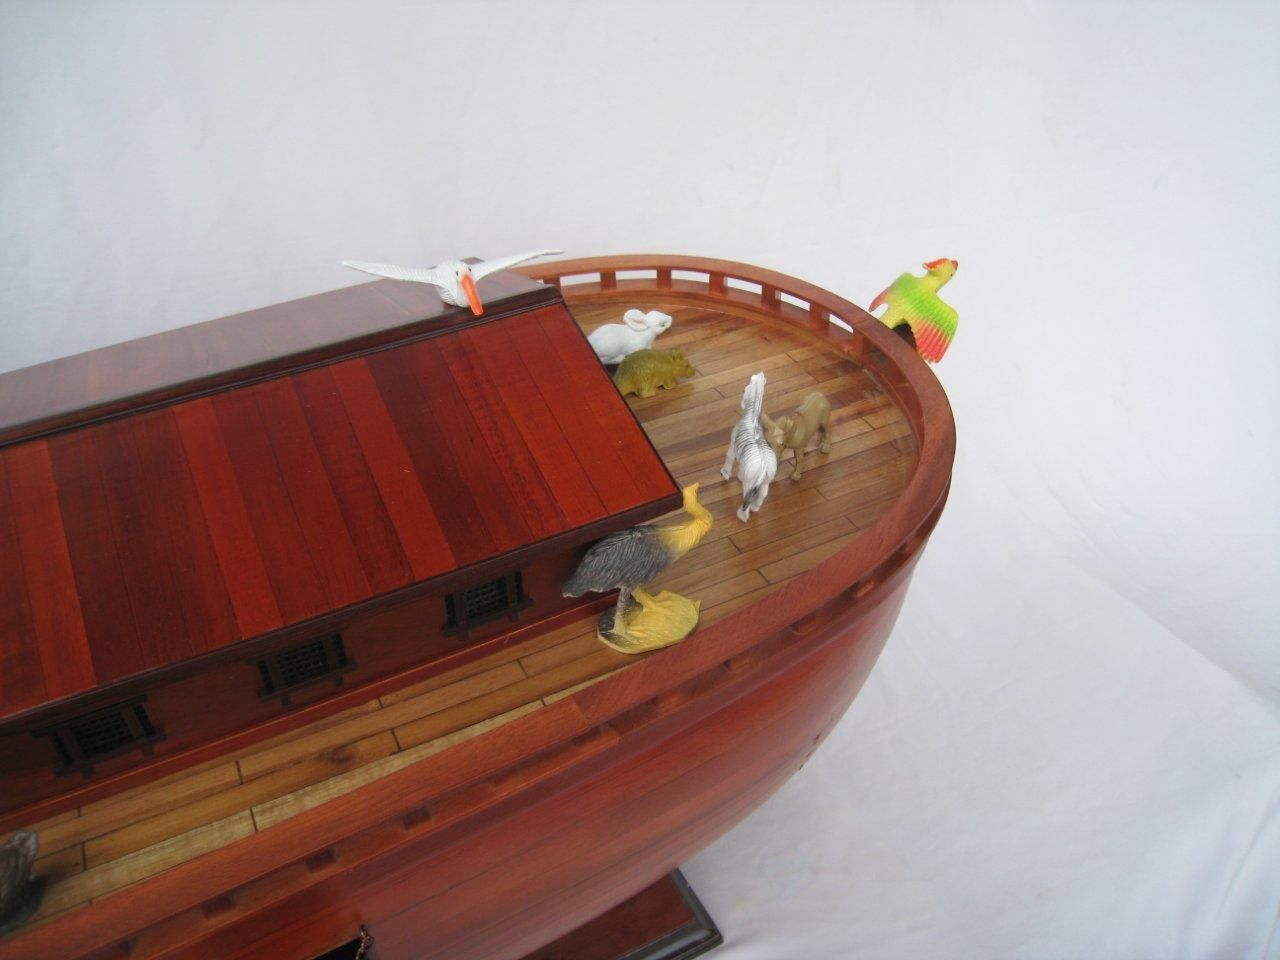 2043-12567-Noahs-Ark-Model-Boat